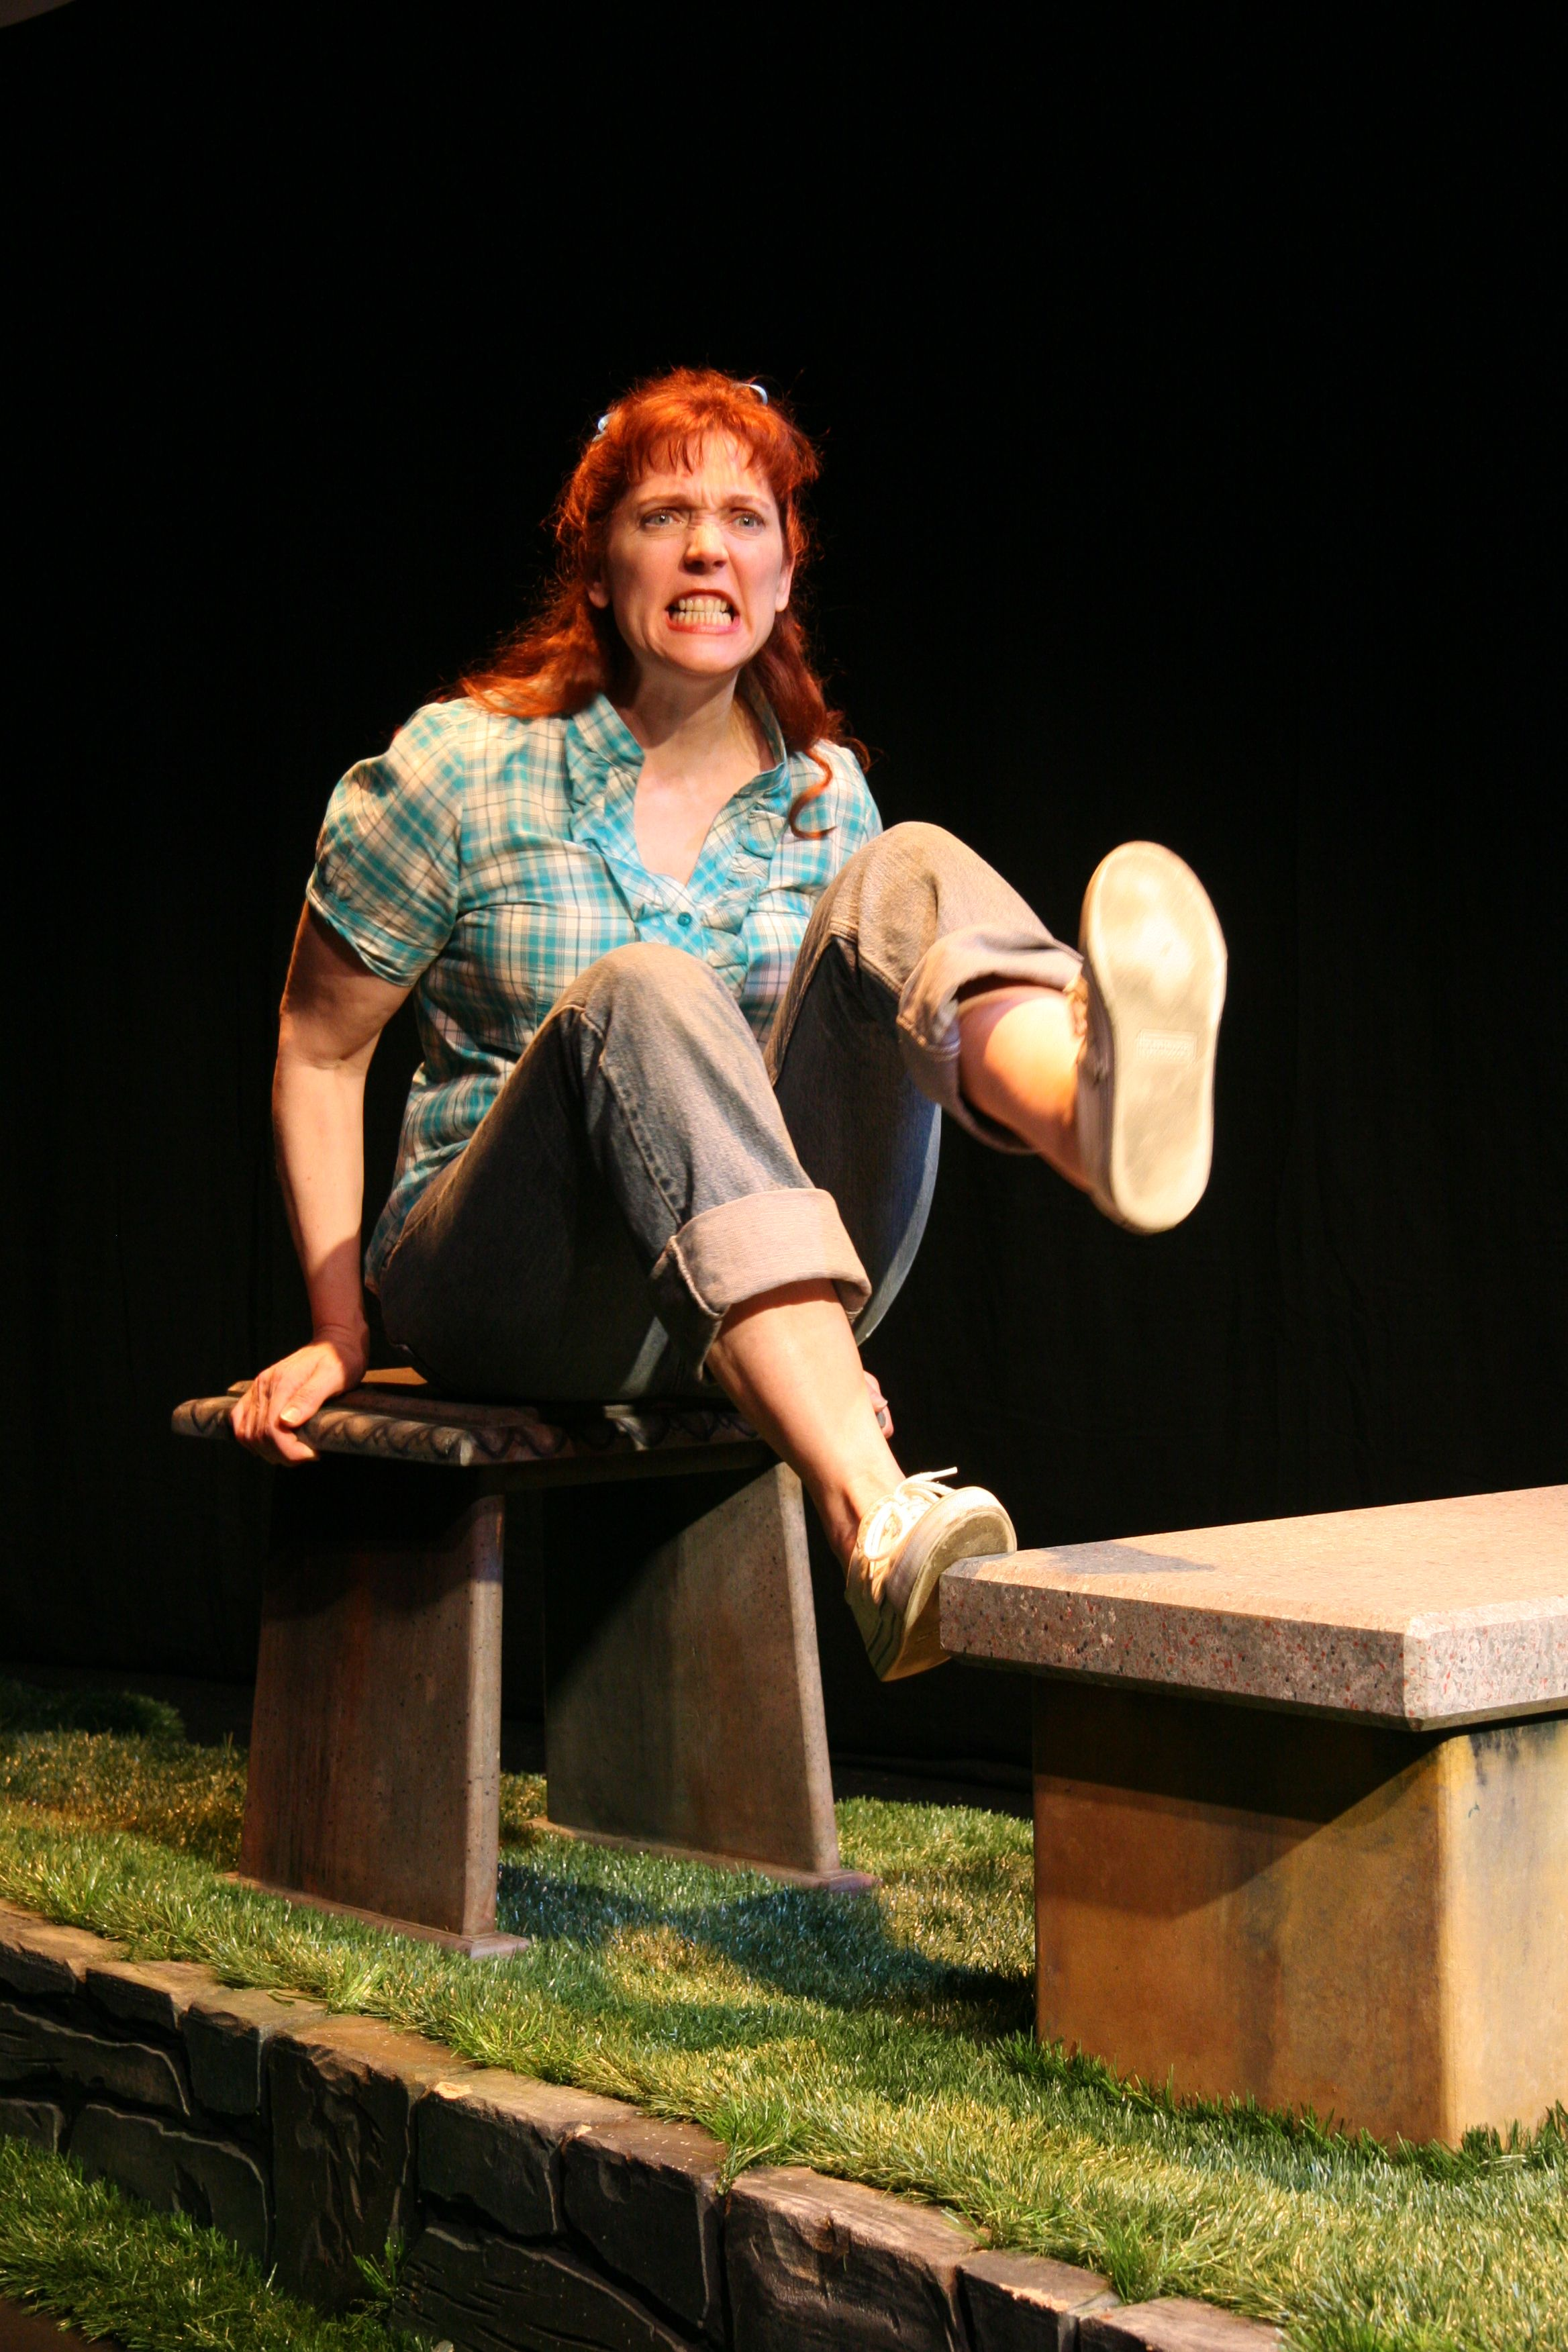 """From The Best of the Fest Benefit Performer: Clarinda Ross in her work """"Spit Like A Big Girl"""""""